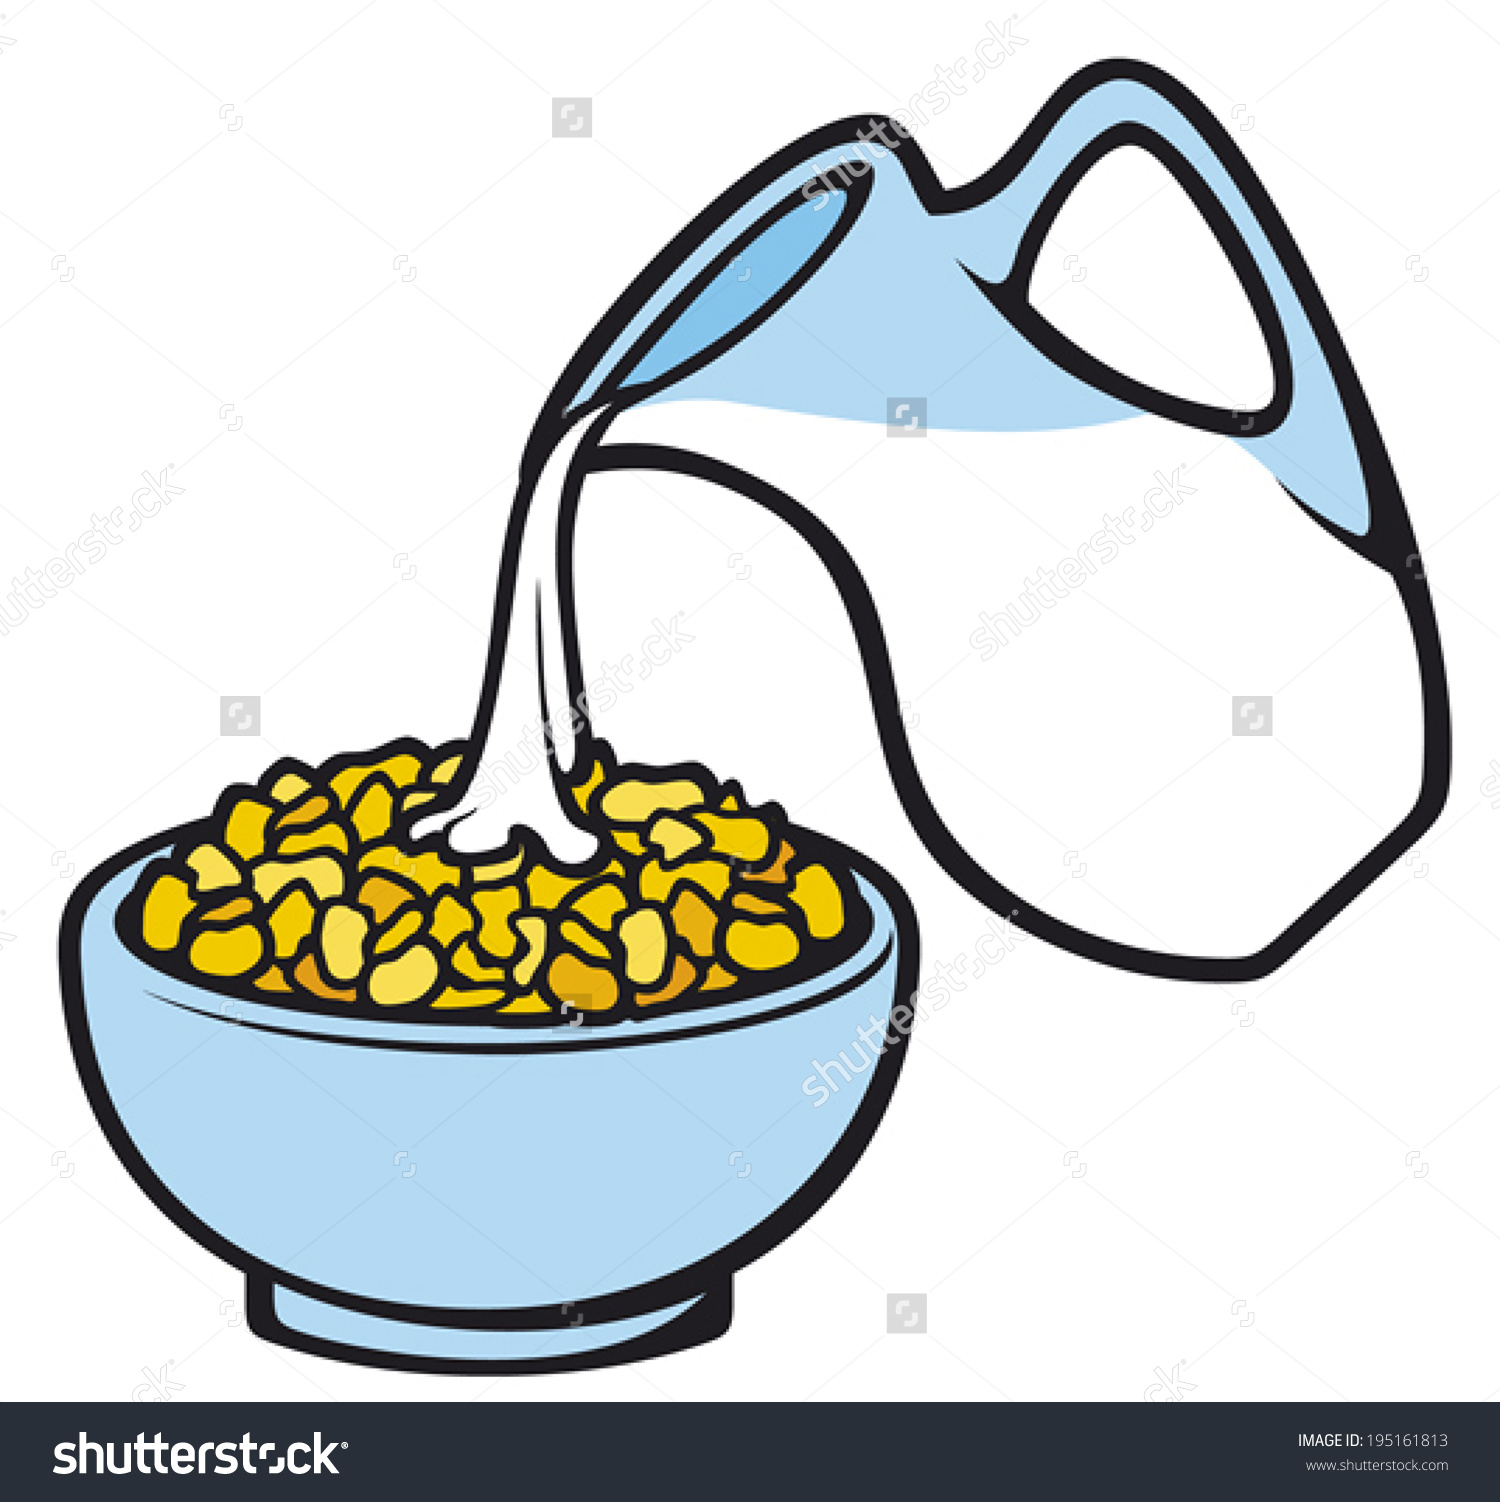 Milk and cereal clipart not in bowl.